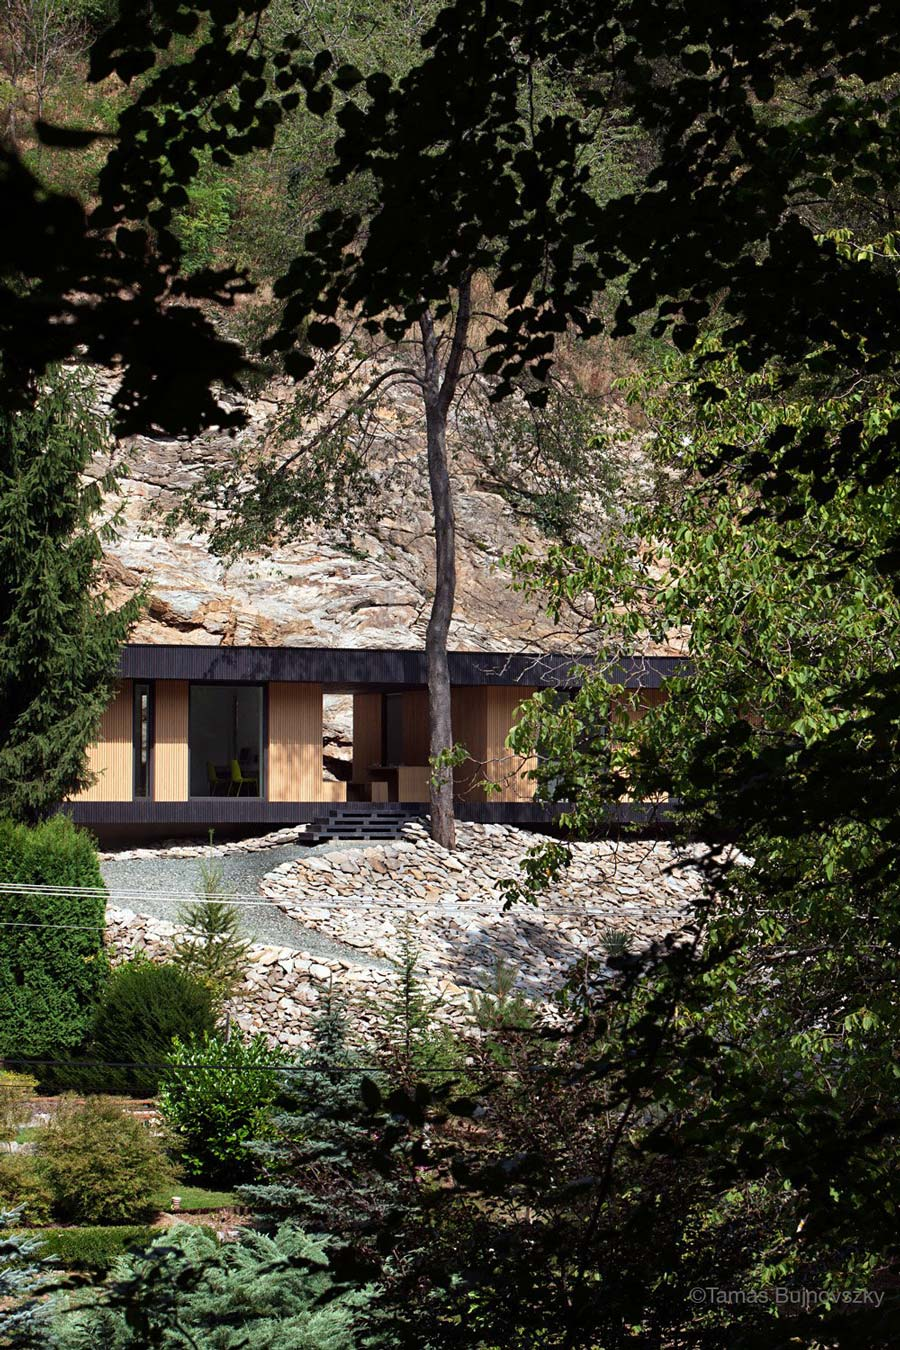 Quarry, Holiday Cabin in Koszeg, Hungary